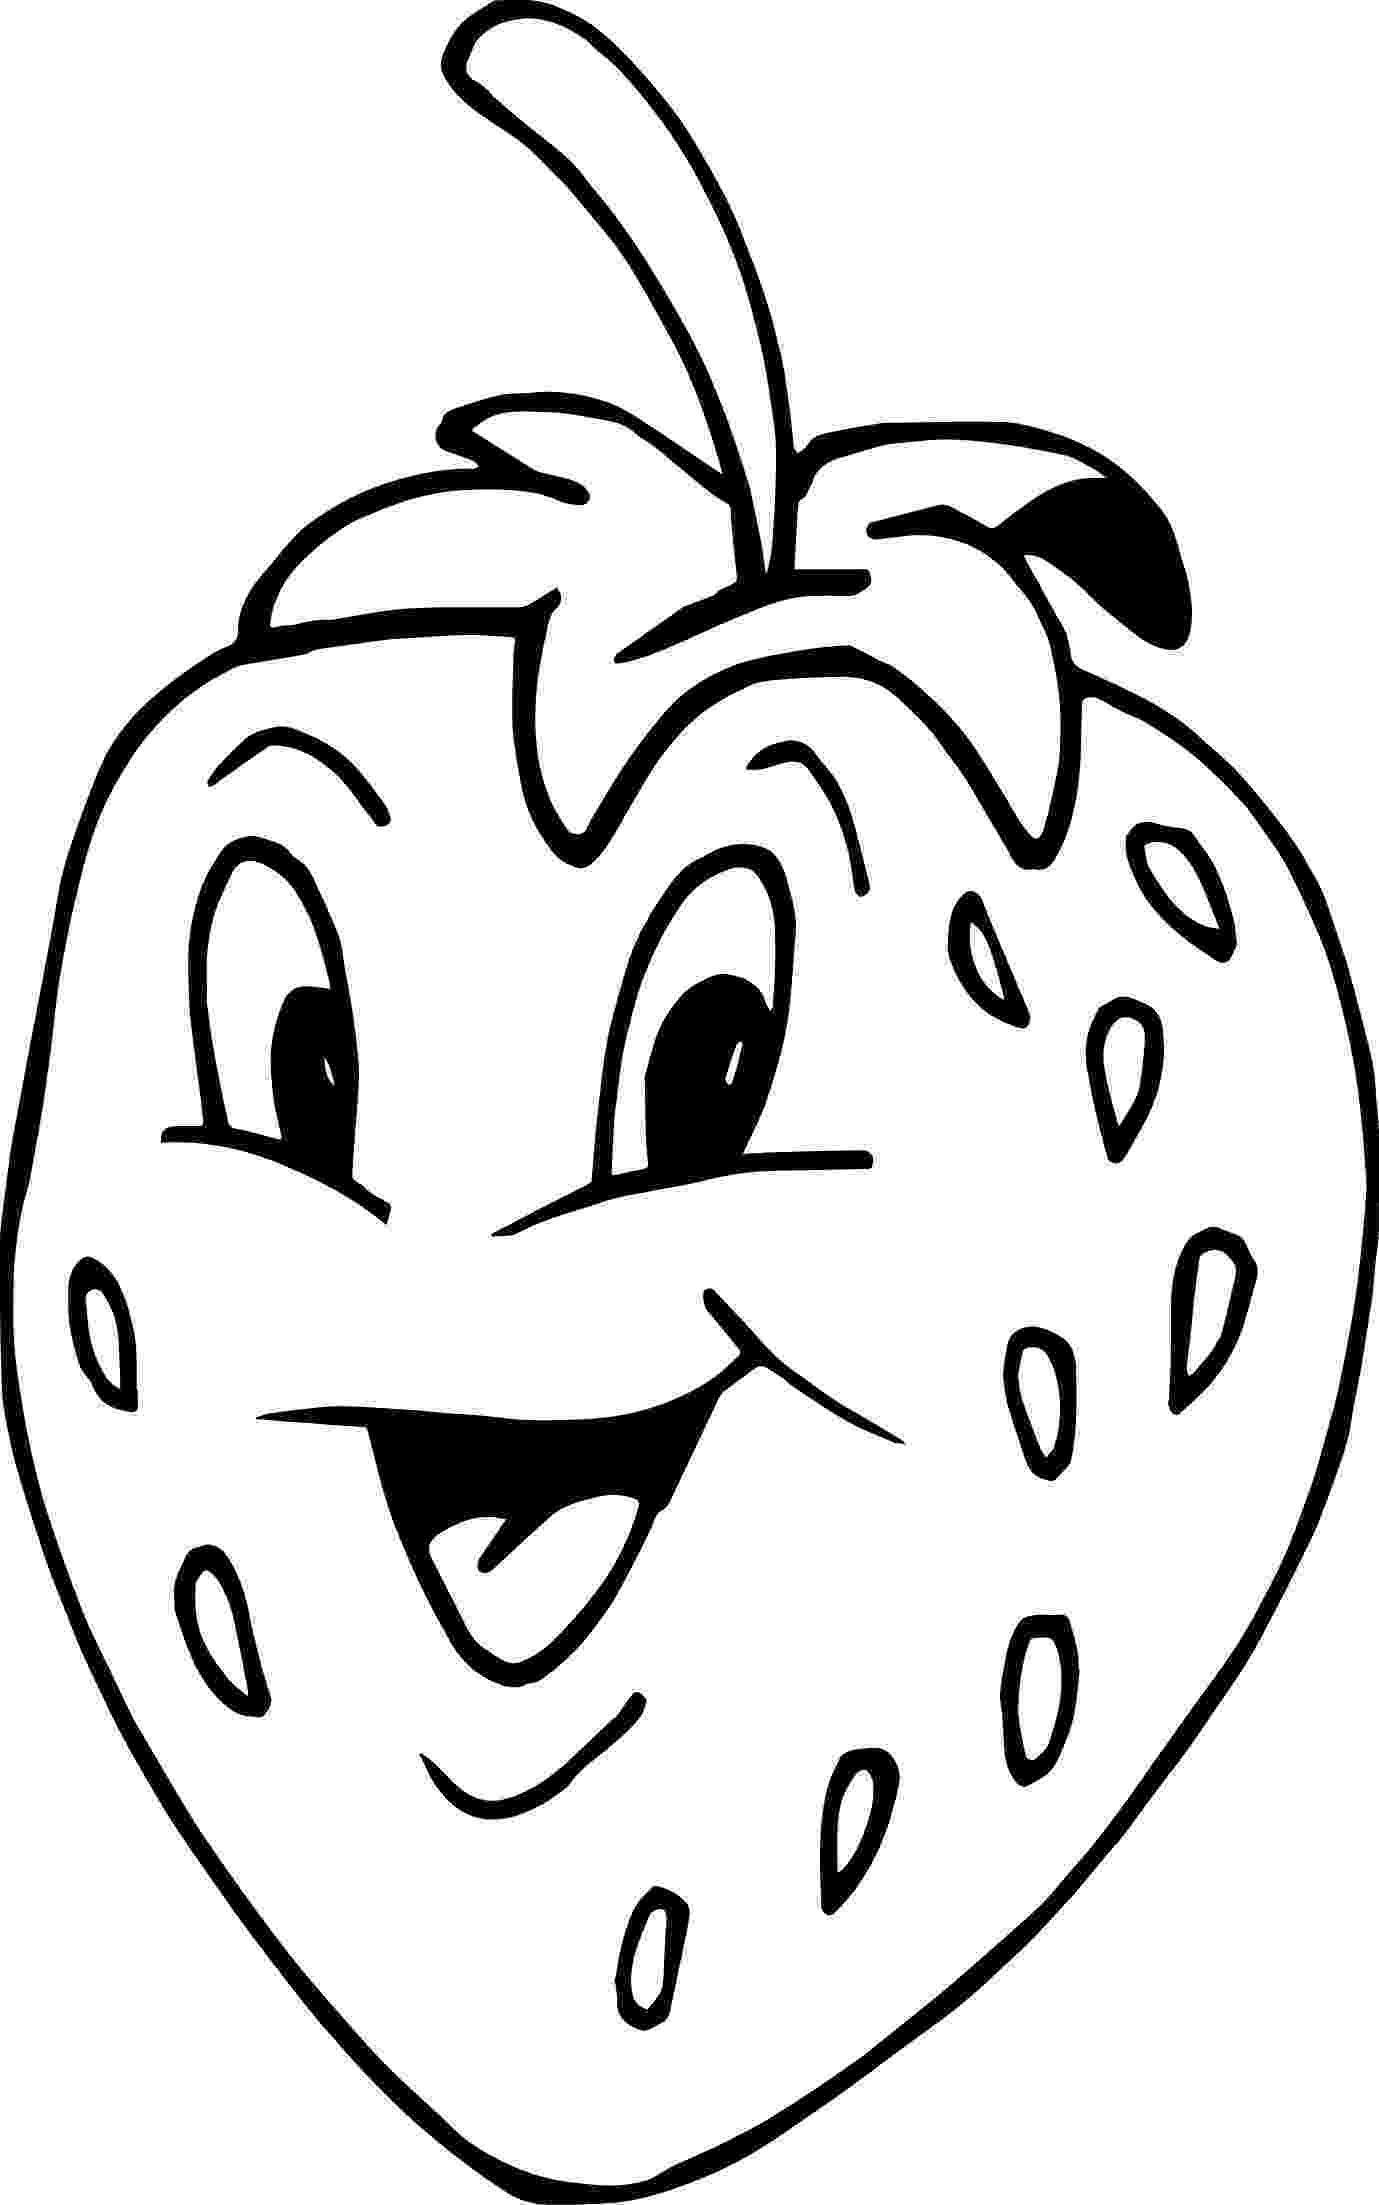 colouring picture of strawberry three strawberries coloring page free printable coloring of colouring picture strawberry